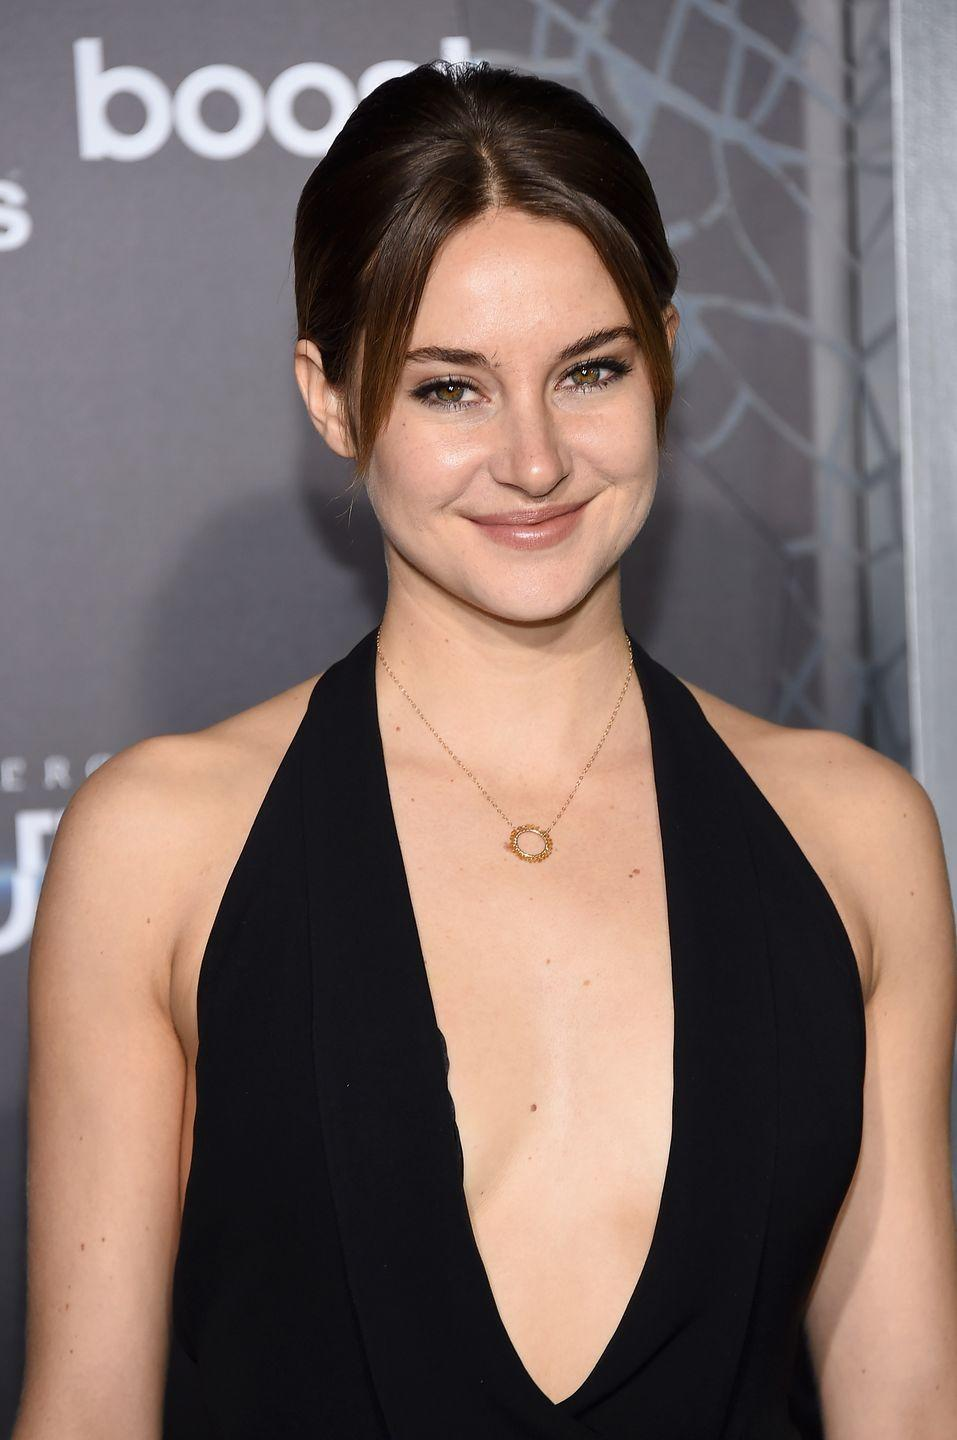 """<p>Shailene Woodley is an environmentalist and herbalist who sources her food from a farm and makes her own beauty products. One food tip she's picked up along her journey? Eating clay. """"So, I've discovered that clay is great for you because your body doesn't absorb it, and it apparently provides a negative charge, so it bonds to negative isotopes,"""" the actress told <a href=""""http://intothegloss.com/2014/03/shailene-woodley-hair/"""" rel=""""nofollow noopener"""" target=""""_blank"""" data-ylk=""""slk:Into the Gloss"""" class=""""link rapid-noclick-resp"""">Into the Gloss</a>. A tip we wouldn't recommend without further research. </p>"""